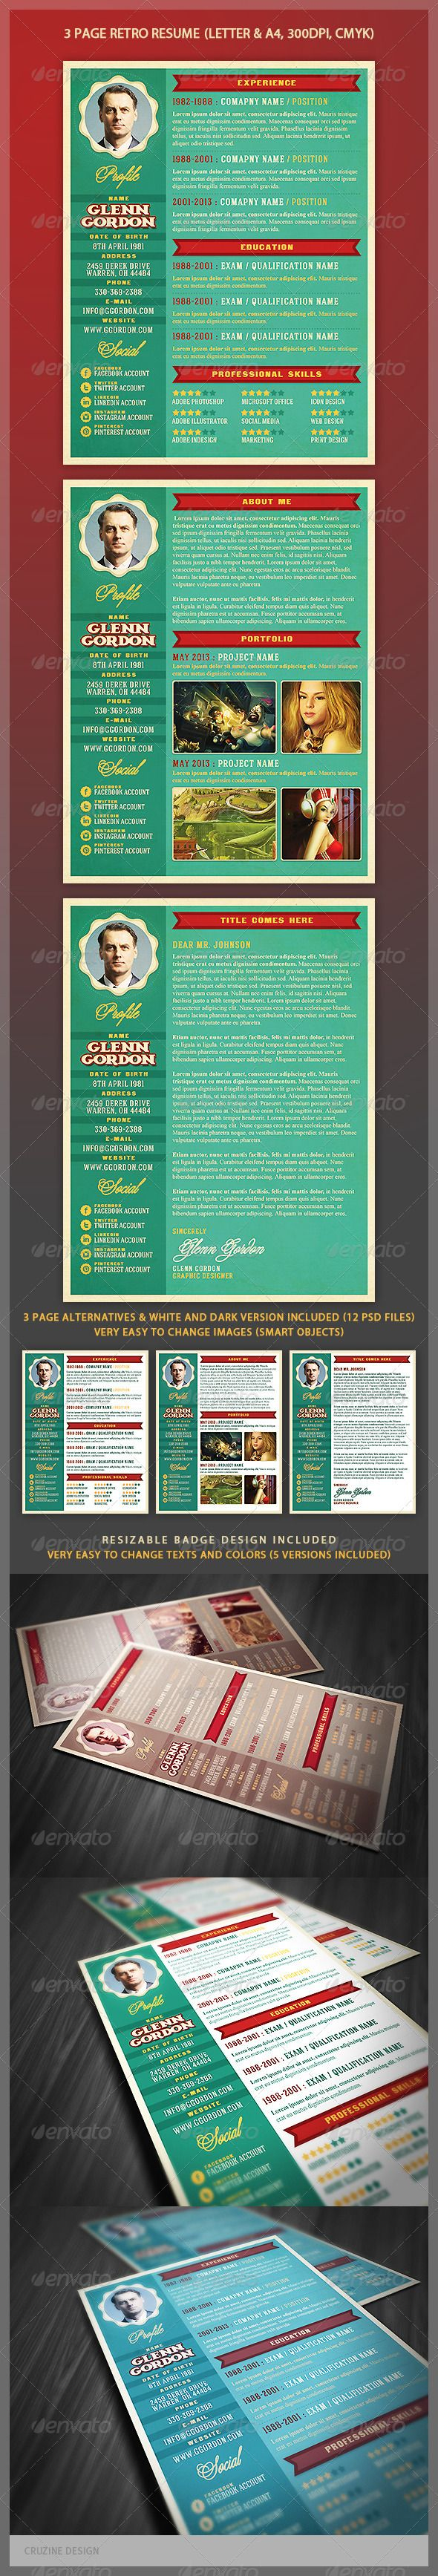 Best Print Templates Images On   Print Templates Font